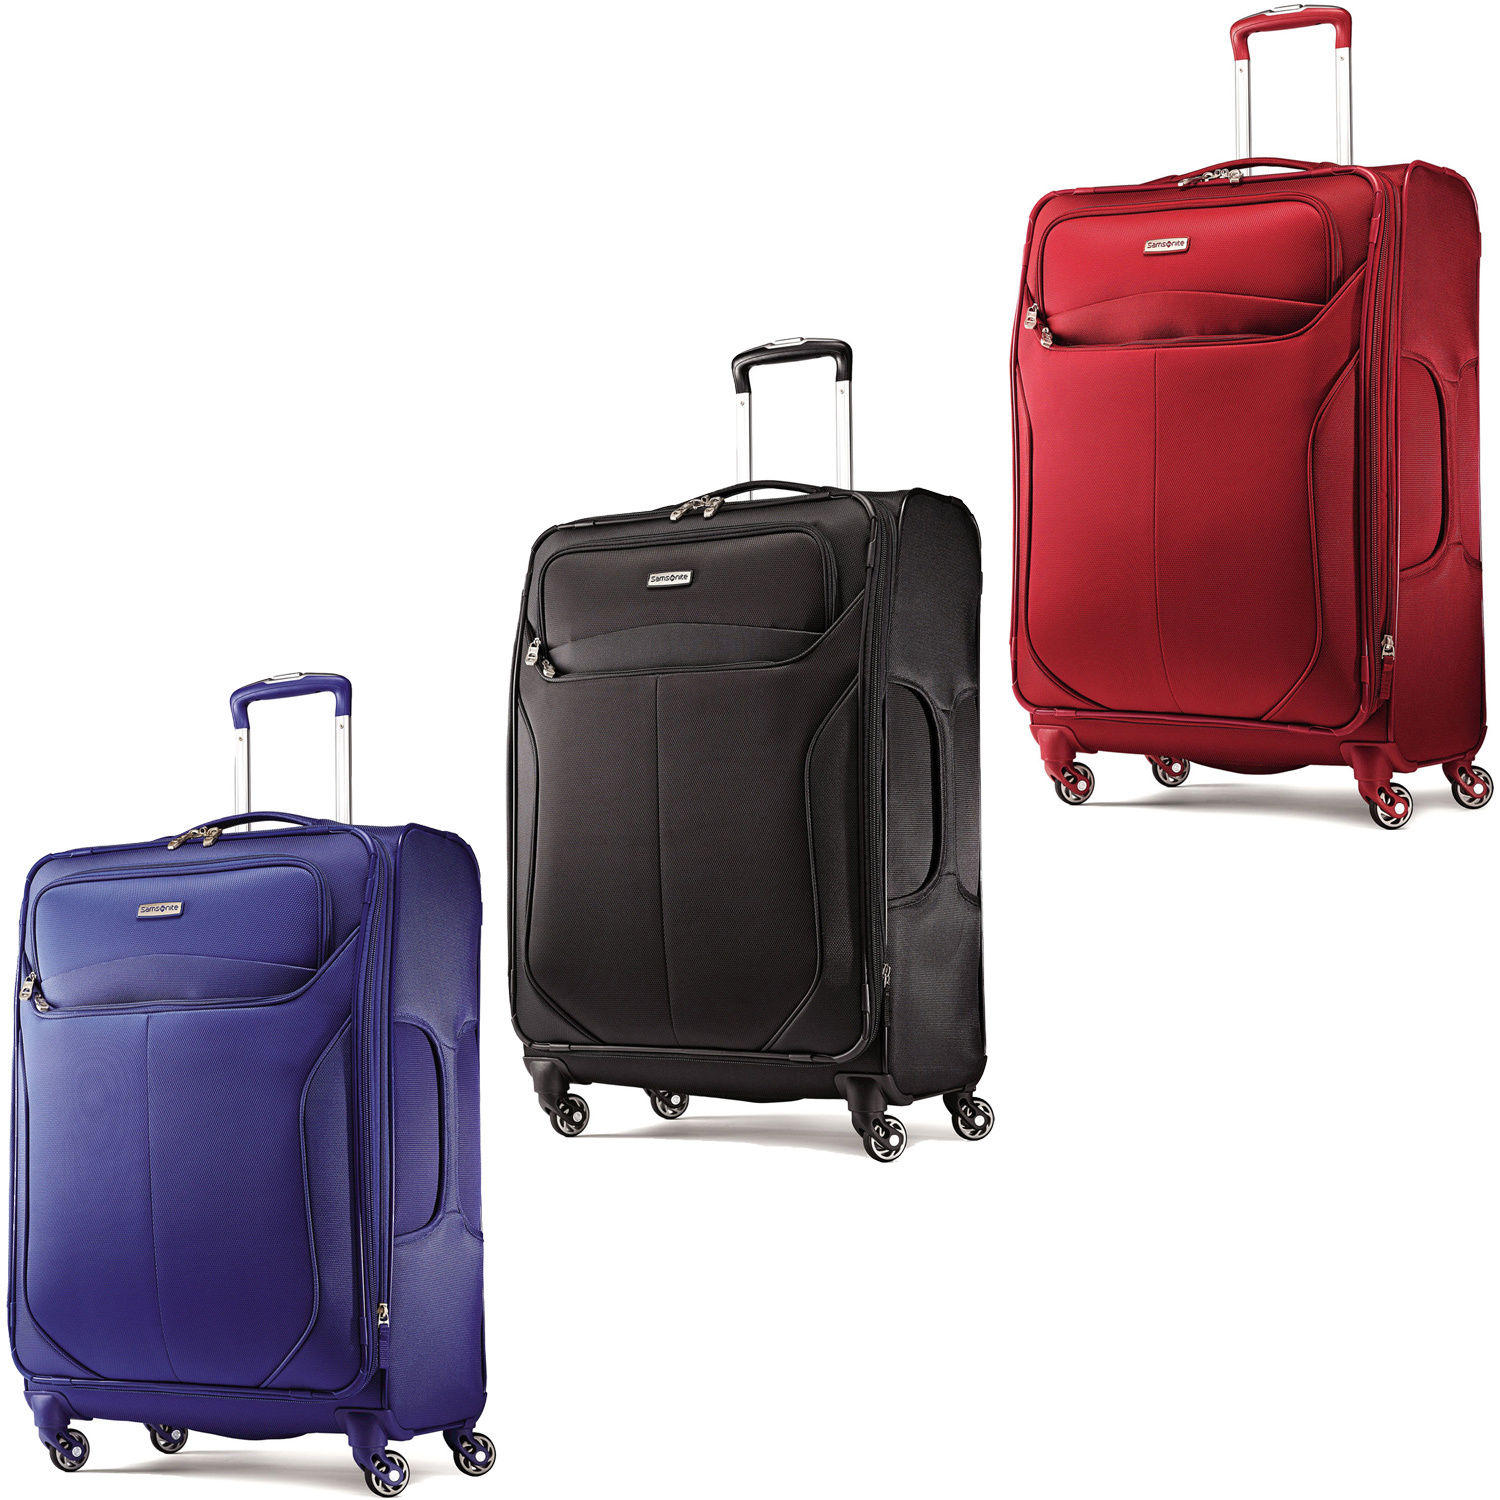 Samsonite LIFTwo 25